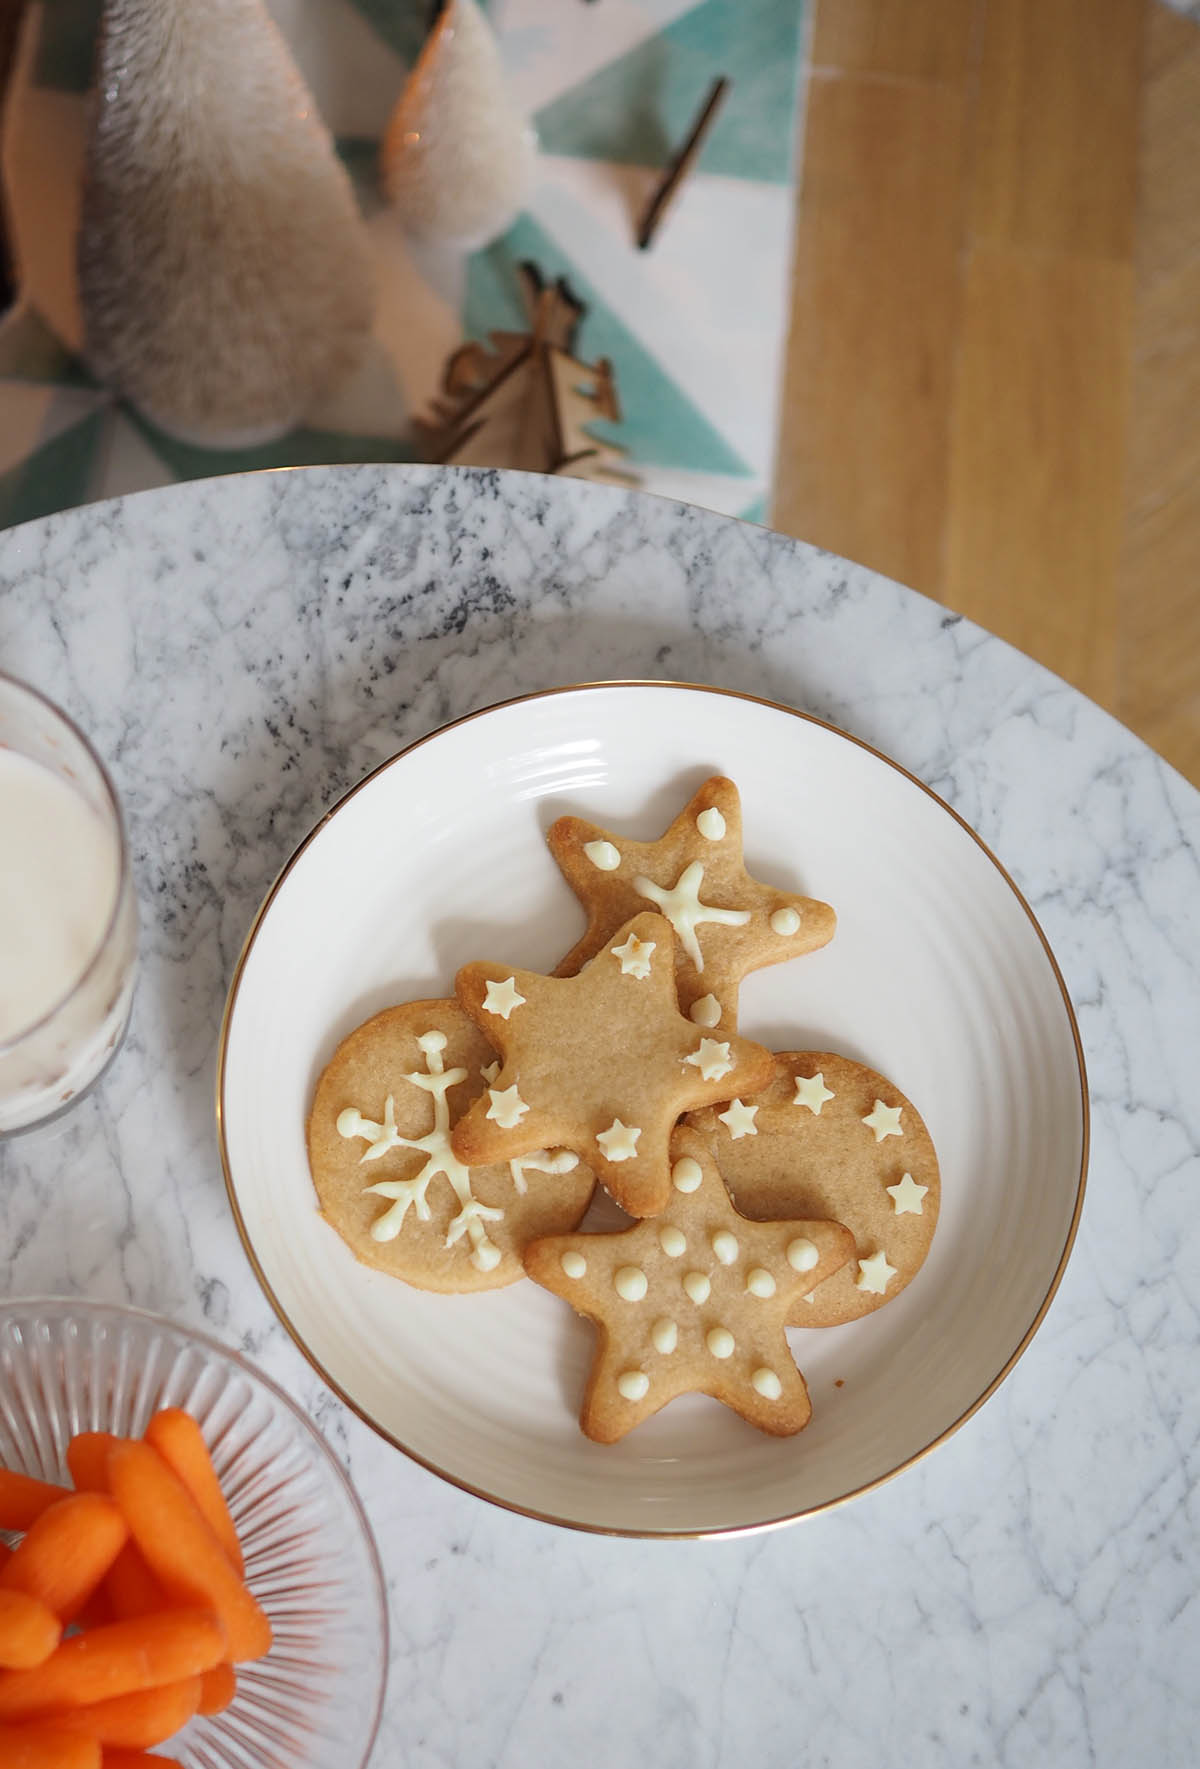 Santa and Rudolph's snack